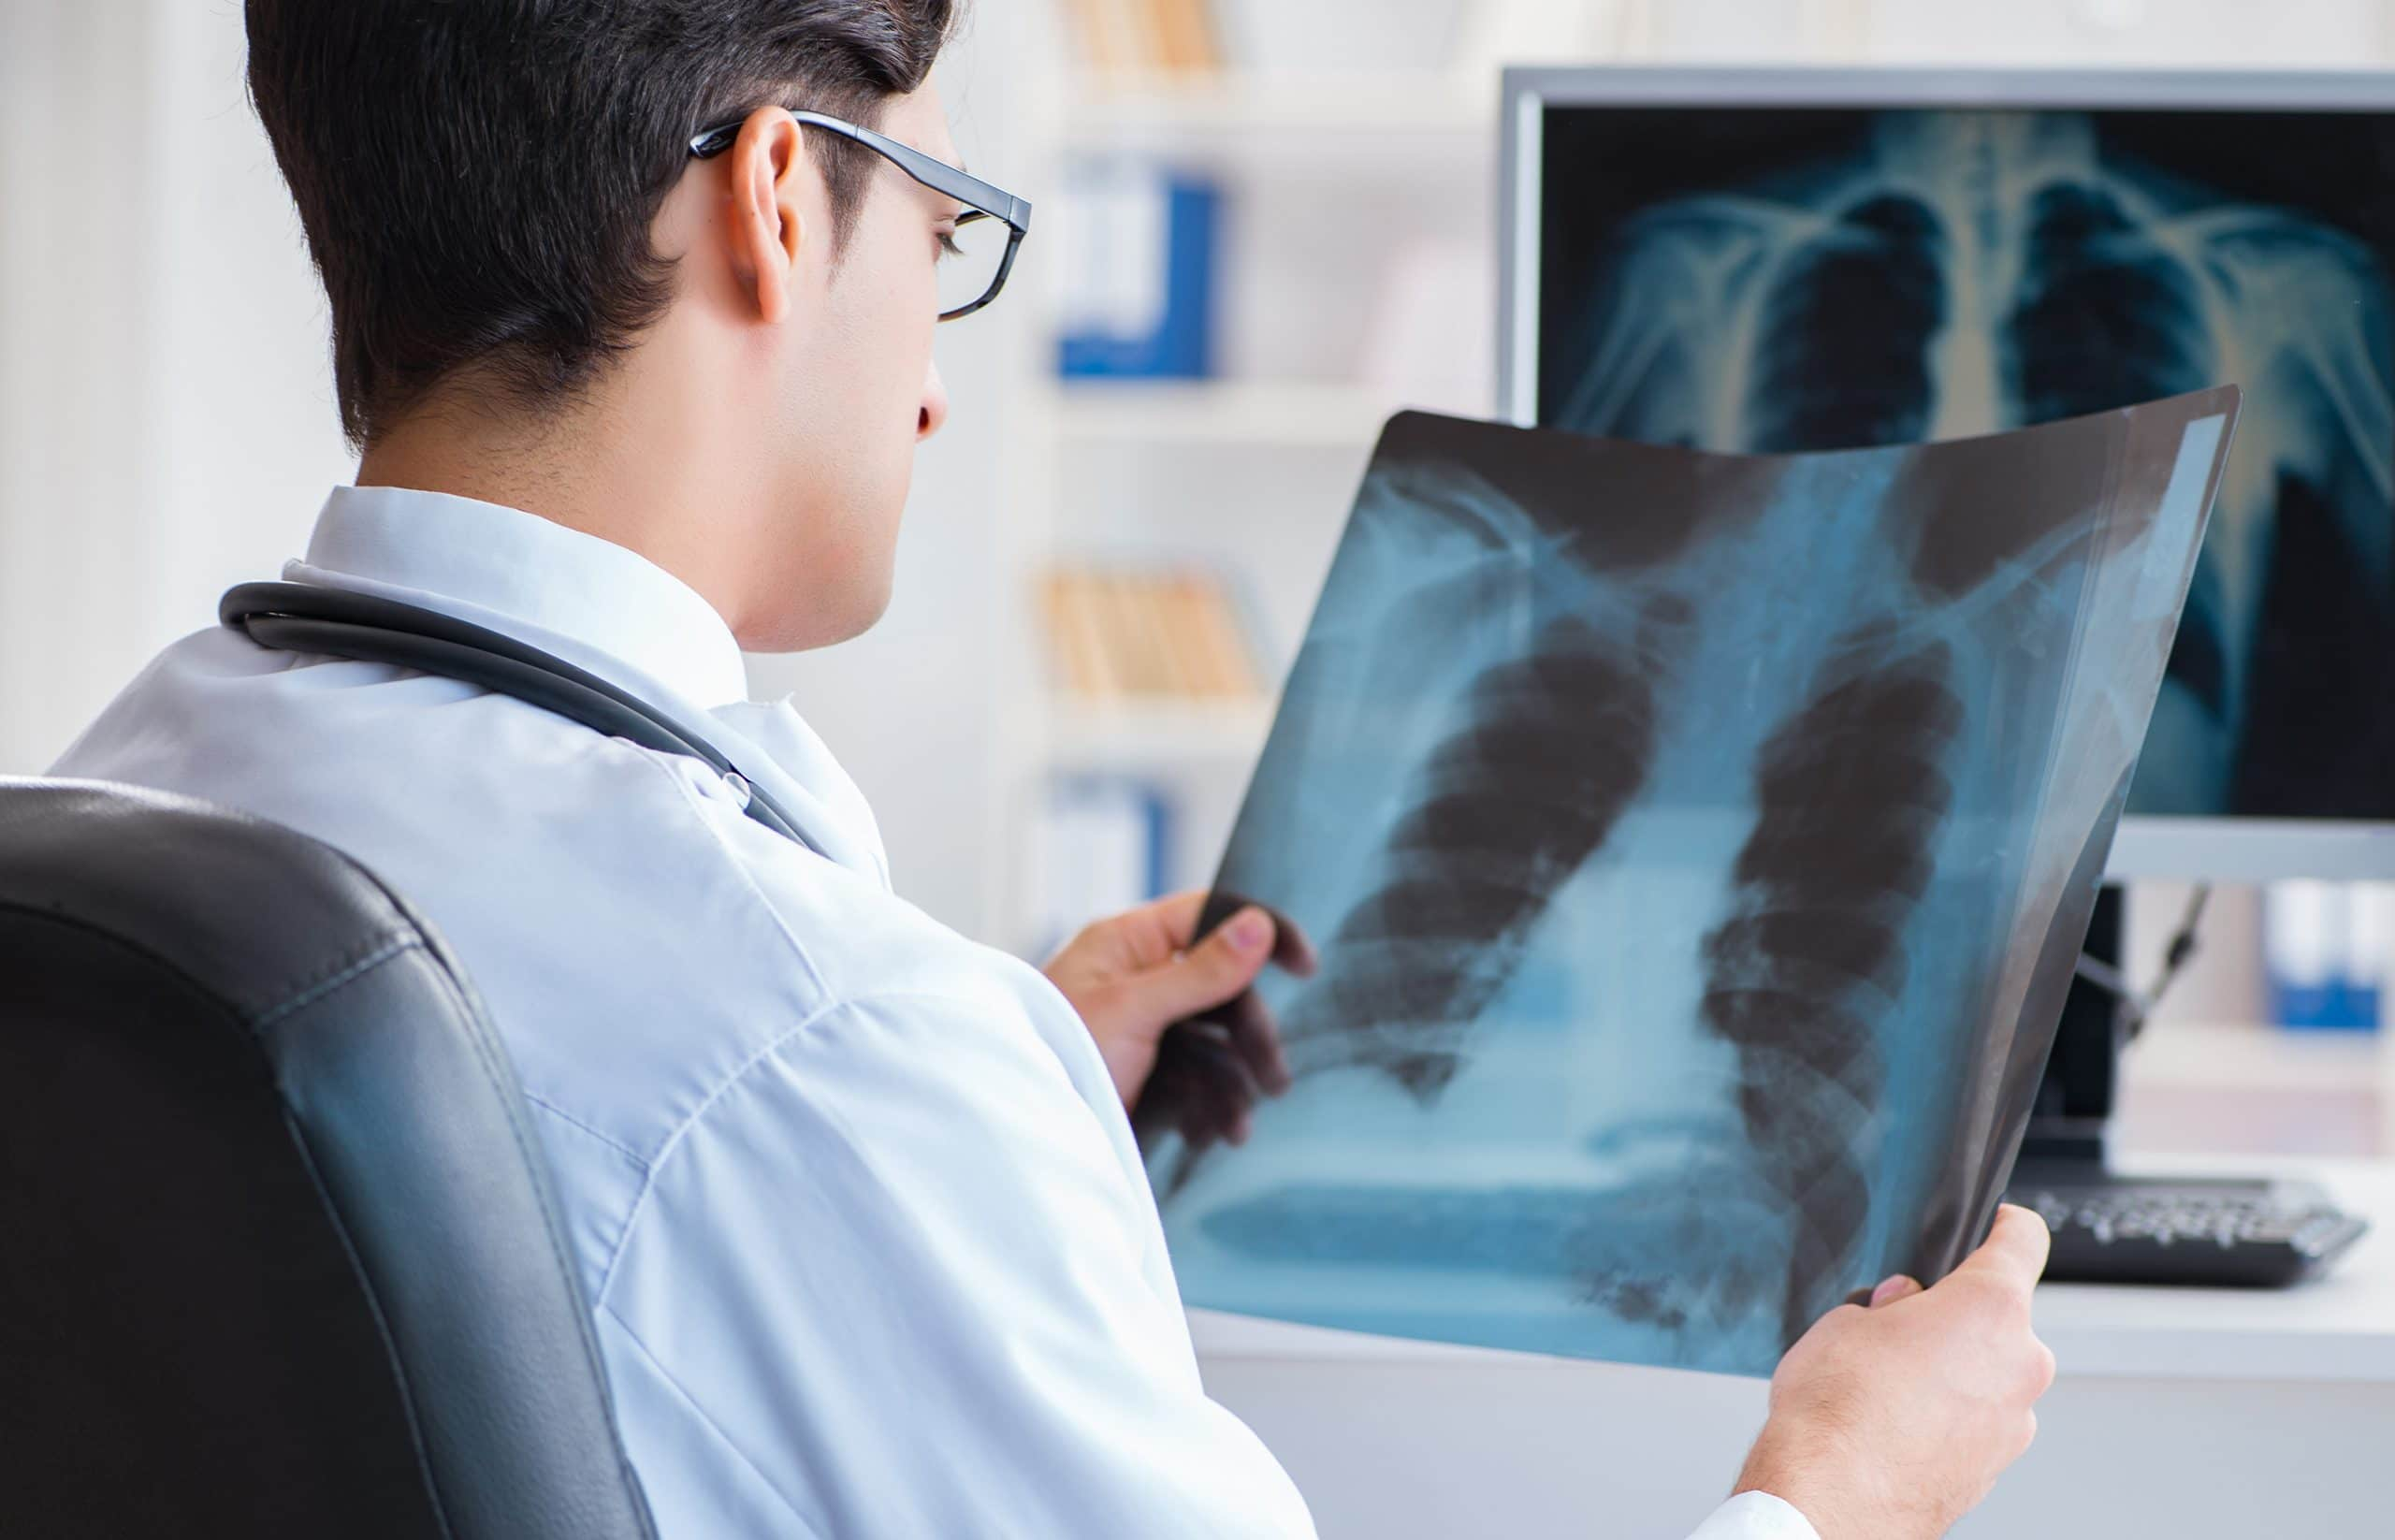 This is an image of a doctor looking at the x-rays of lungs.